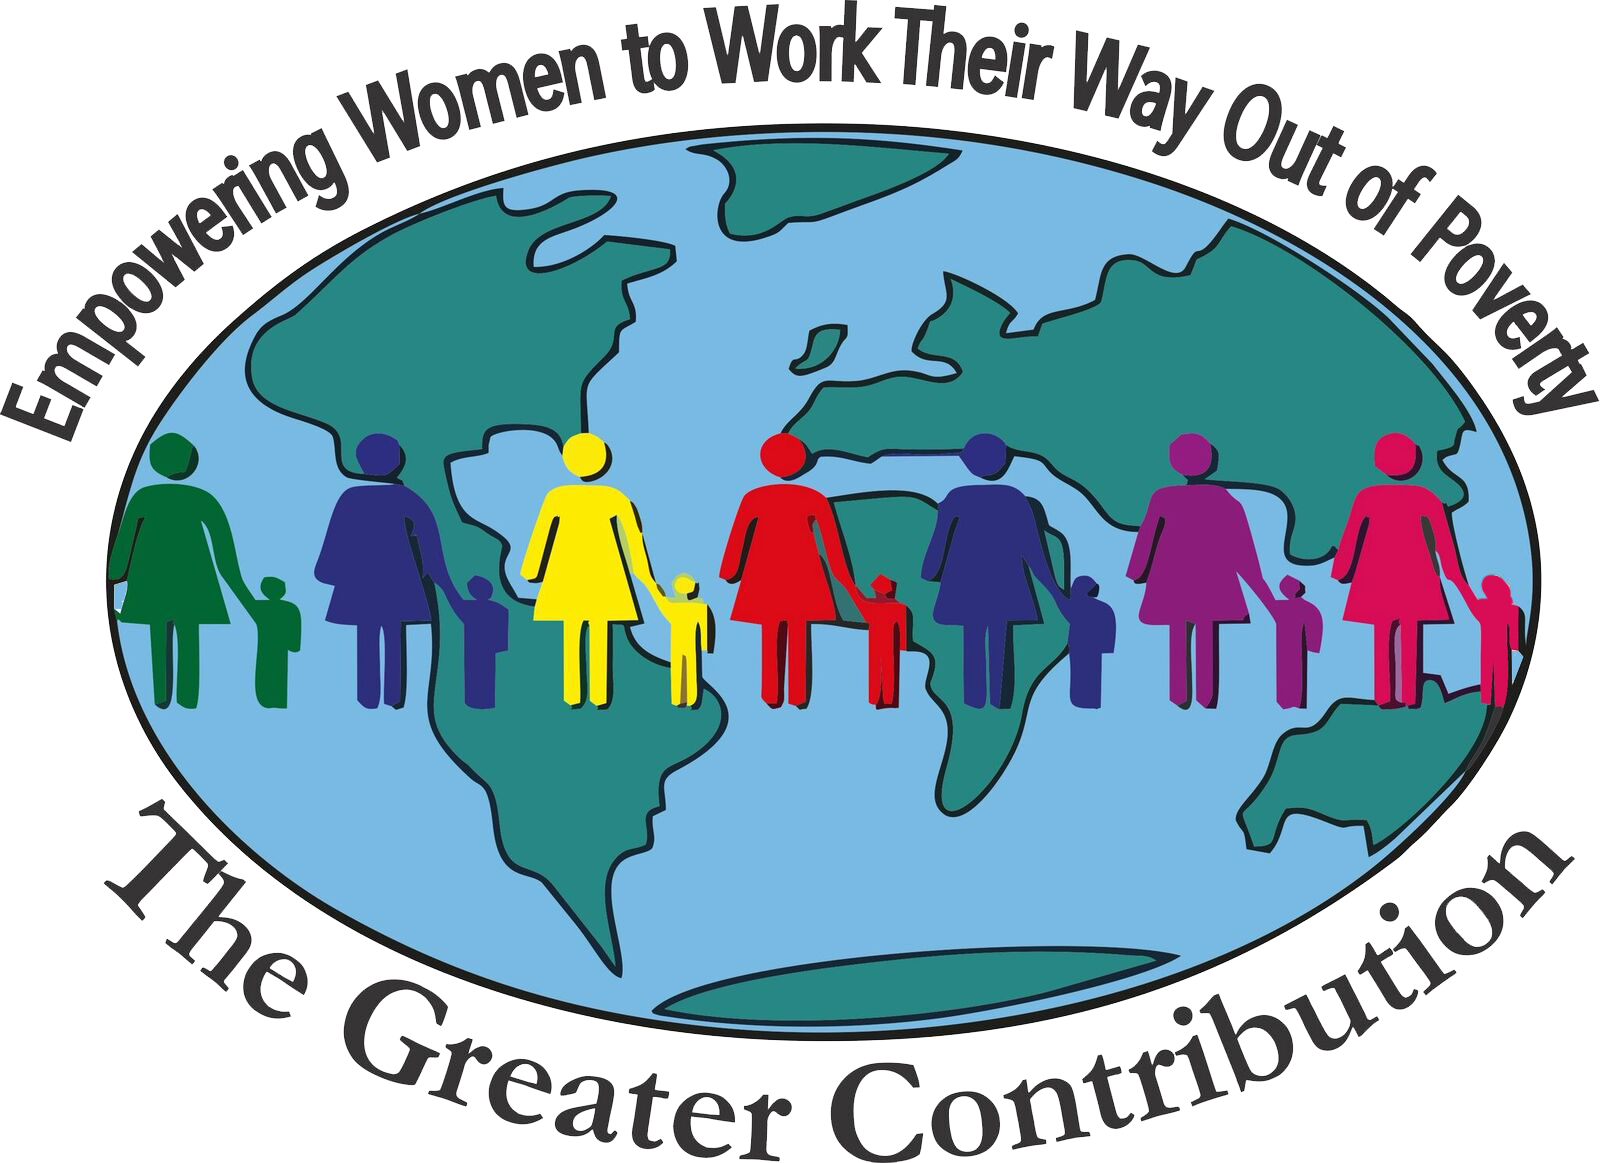 Logo of The Greater Contribution